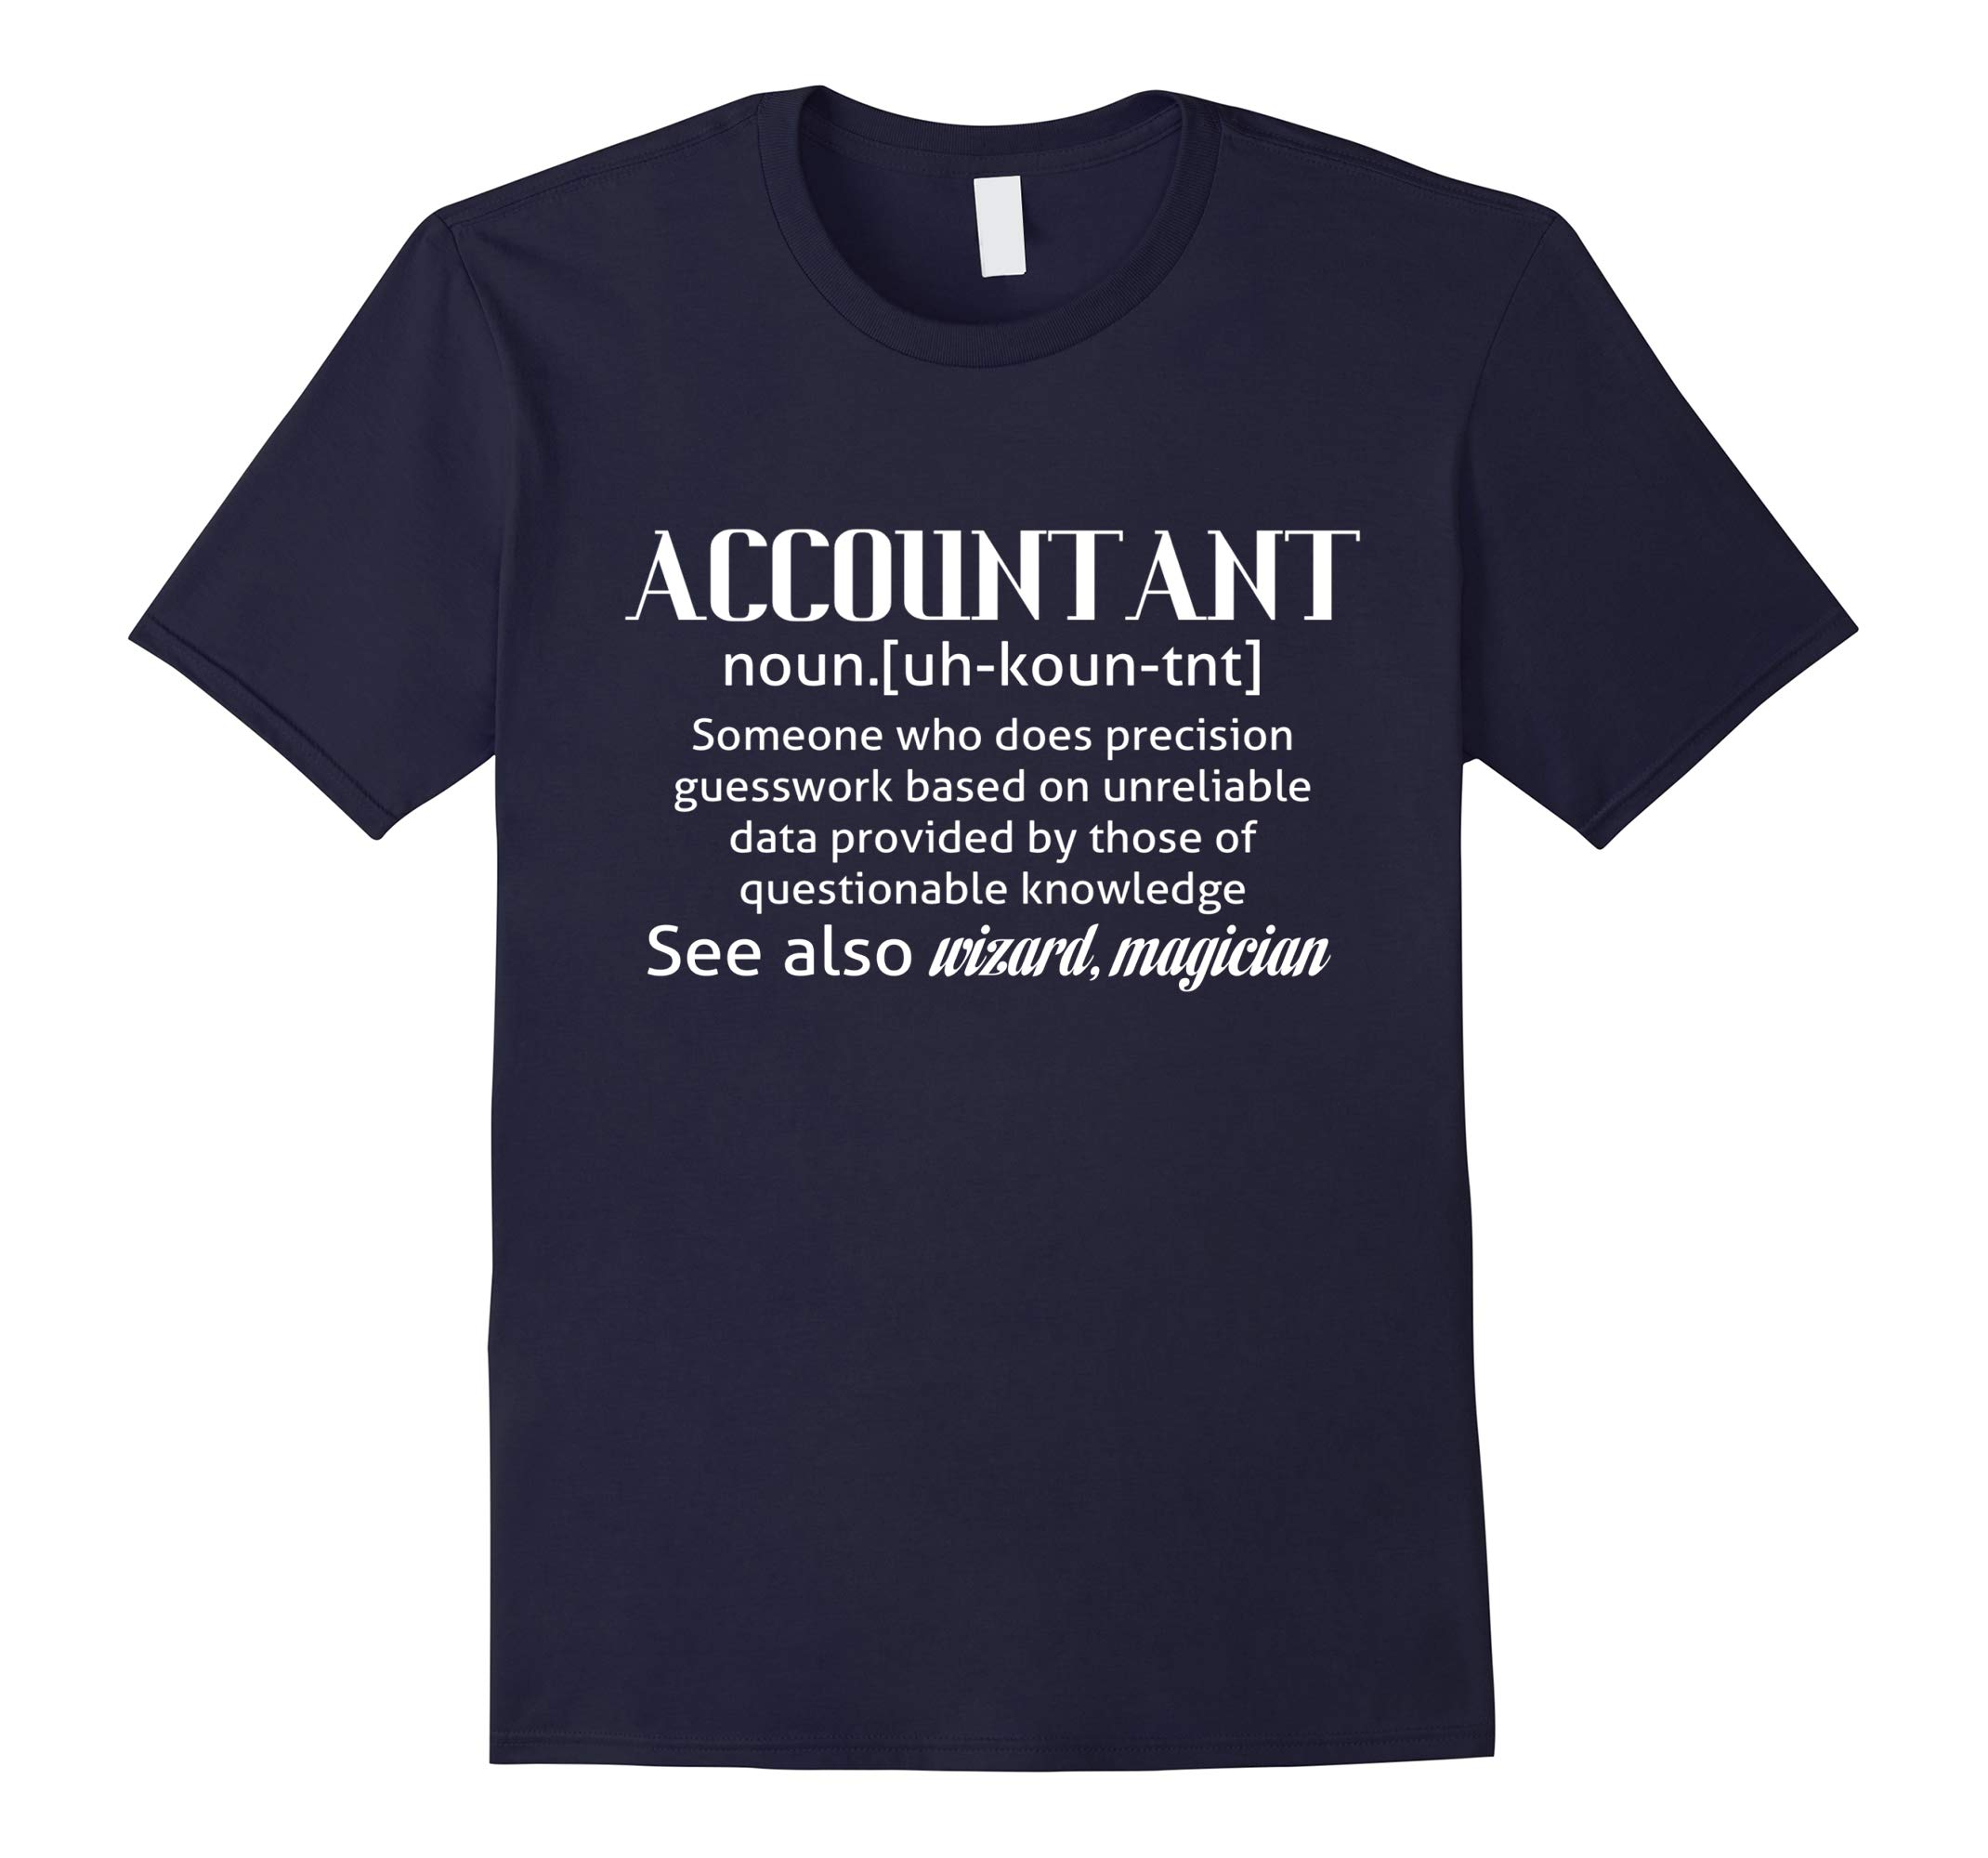 Funny Accountant Meaning T Shirt - Definition Shirts-RT